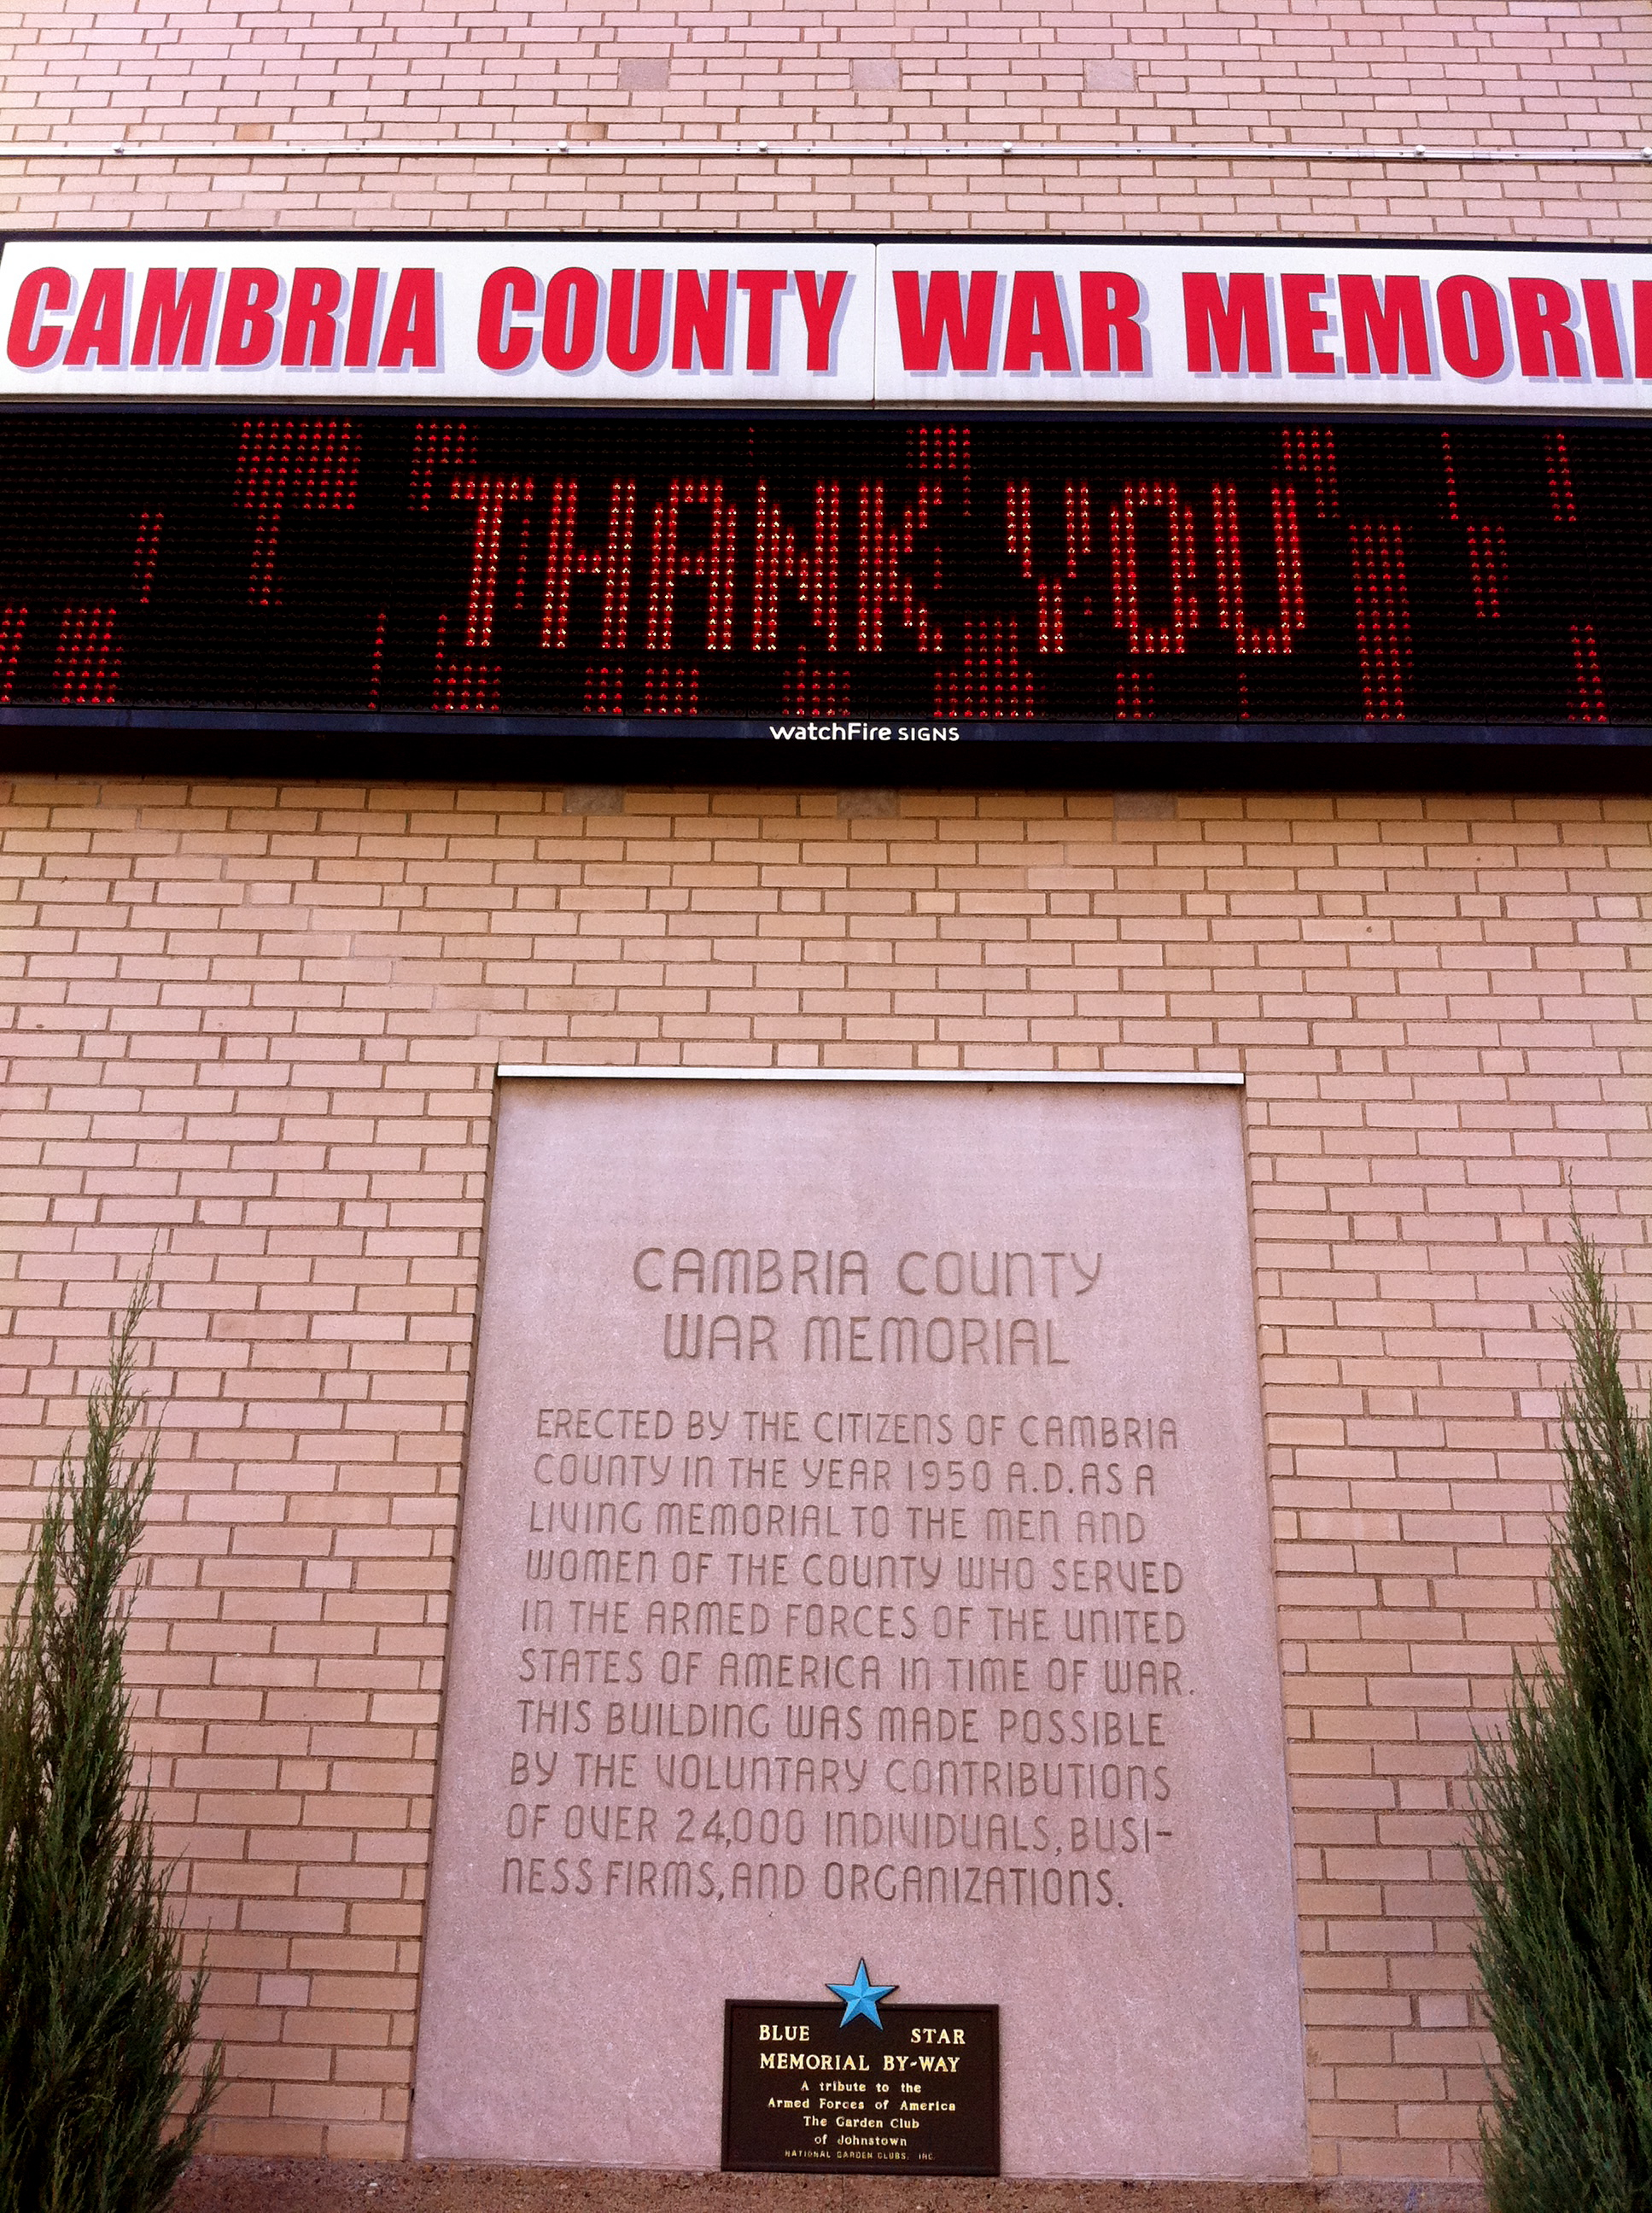 the battle of cambria Toawiv – the battle of cambrai 1917 – setup november 24, 2017 november 27, 2017 spelk aar 2 comments 1975 views on november 20th 1917, one of the more important turning points in the first world war happened around cambrai .